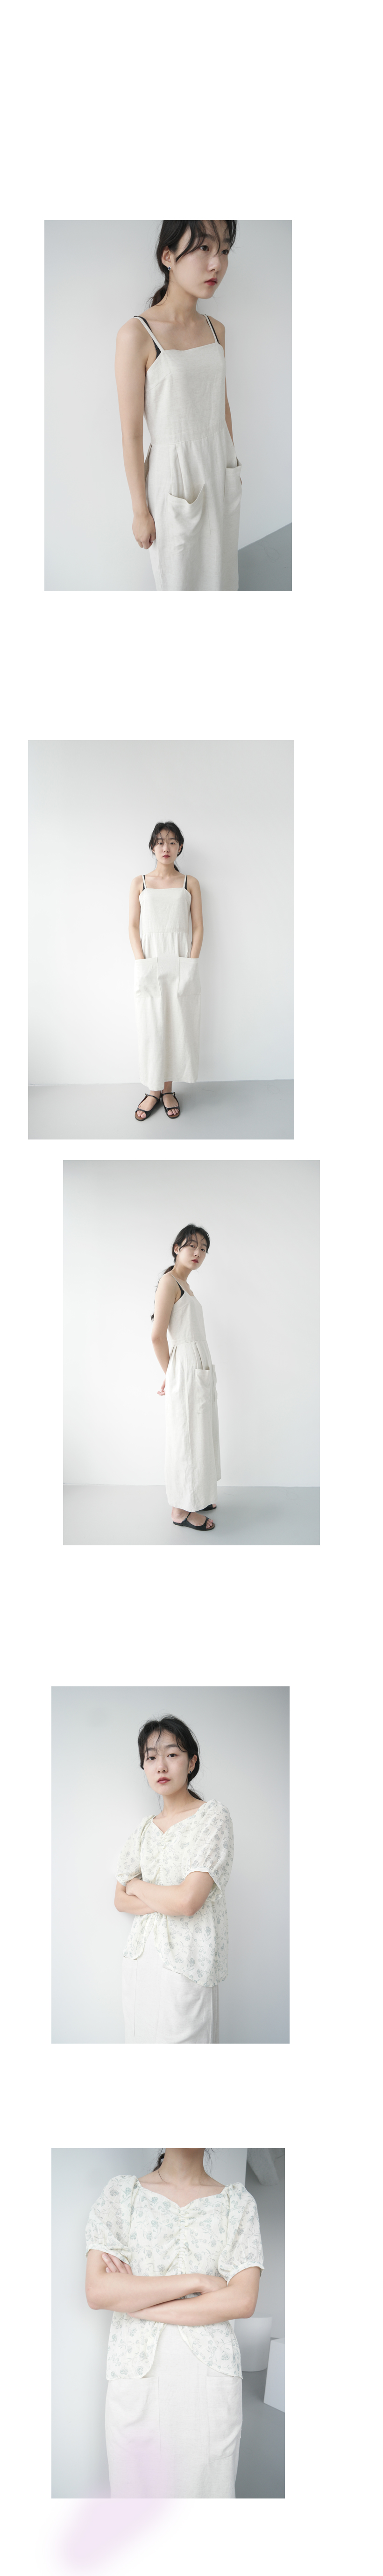 purity back vent one-piece